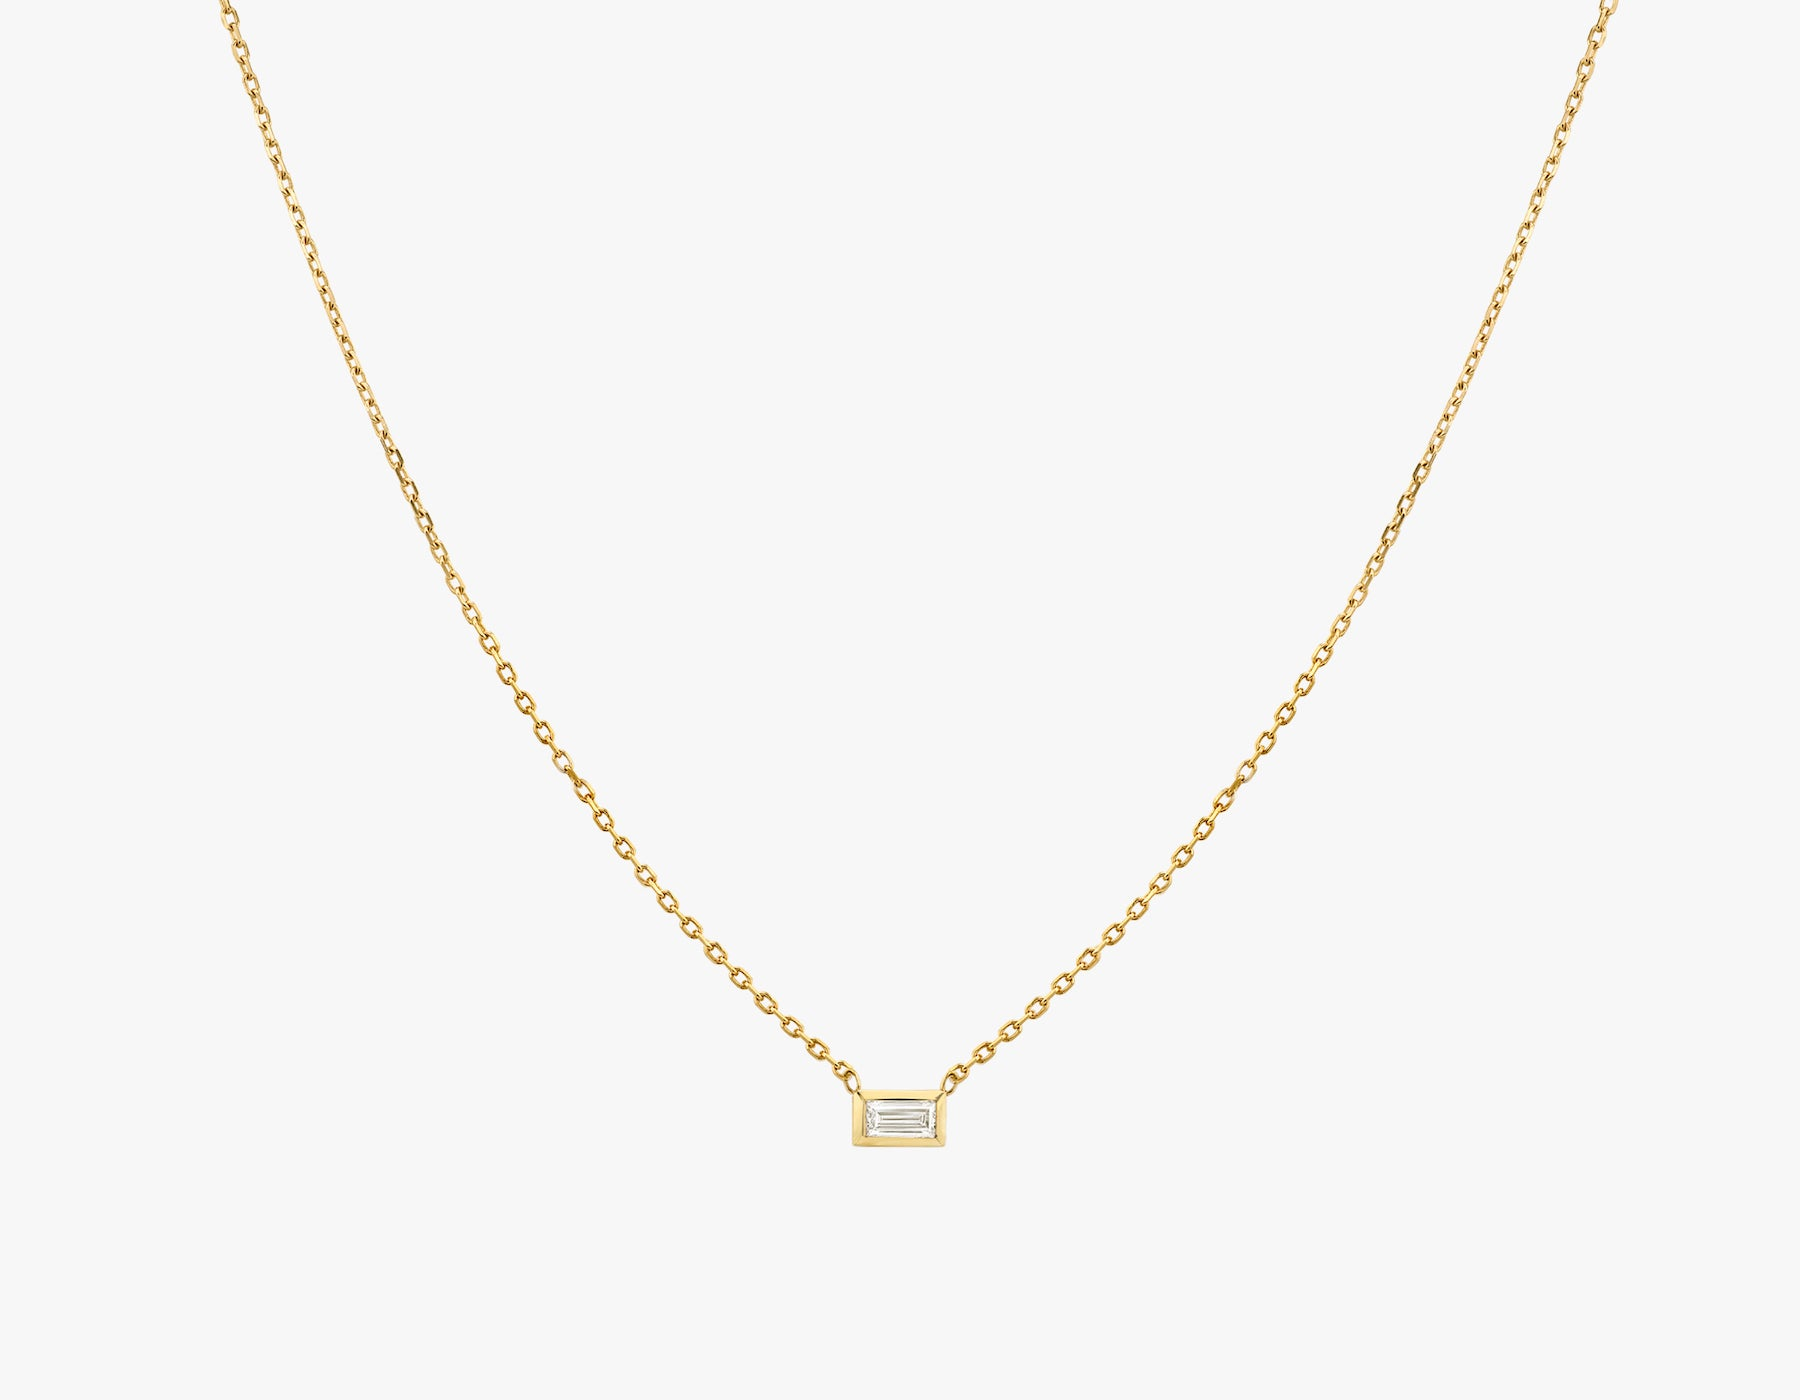 Vrai simple minimalist Baguette Diamond Bezel Necklace, 14K Yellow Gold